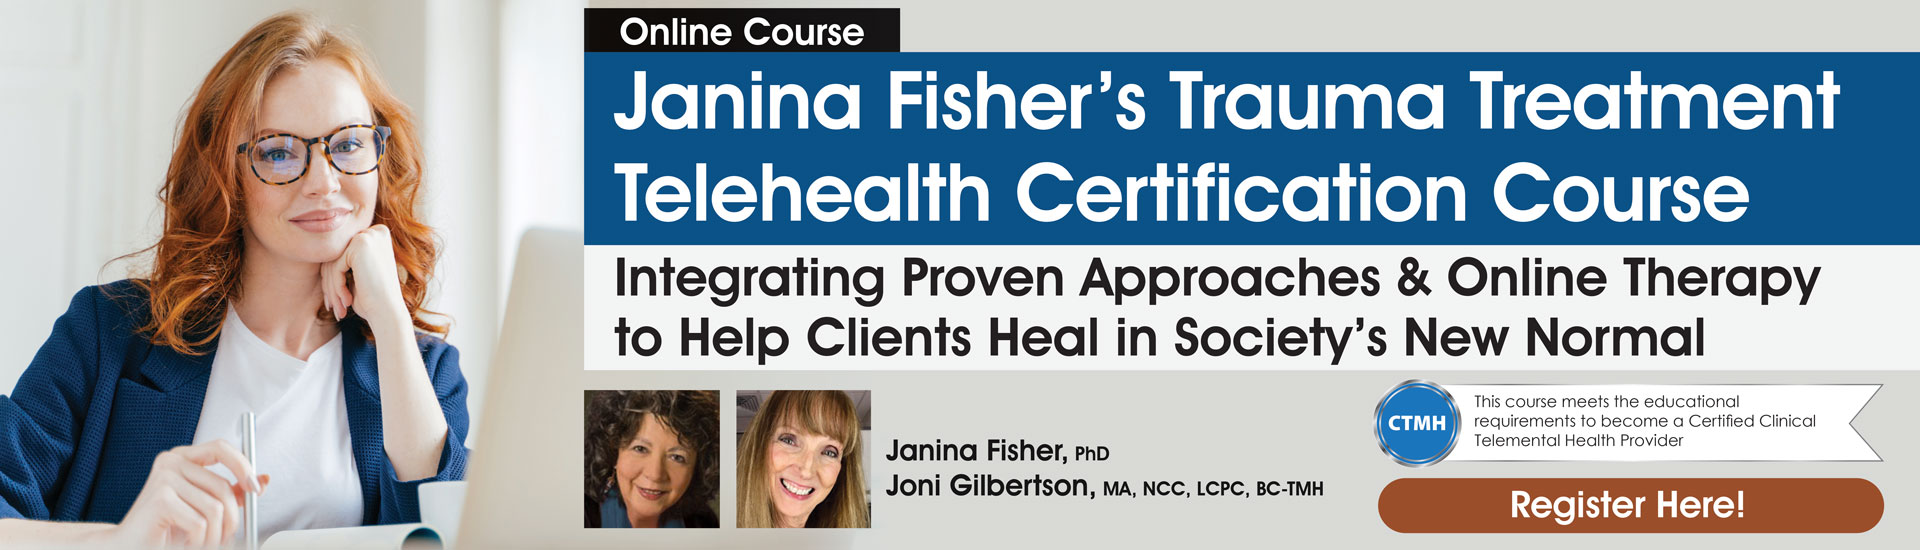 Janina Fisher's Trauma Treatment Telehealth Certification Course